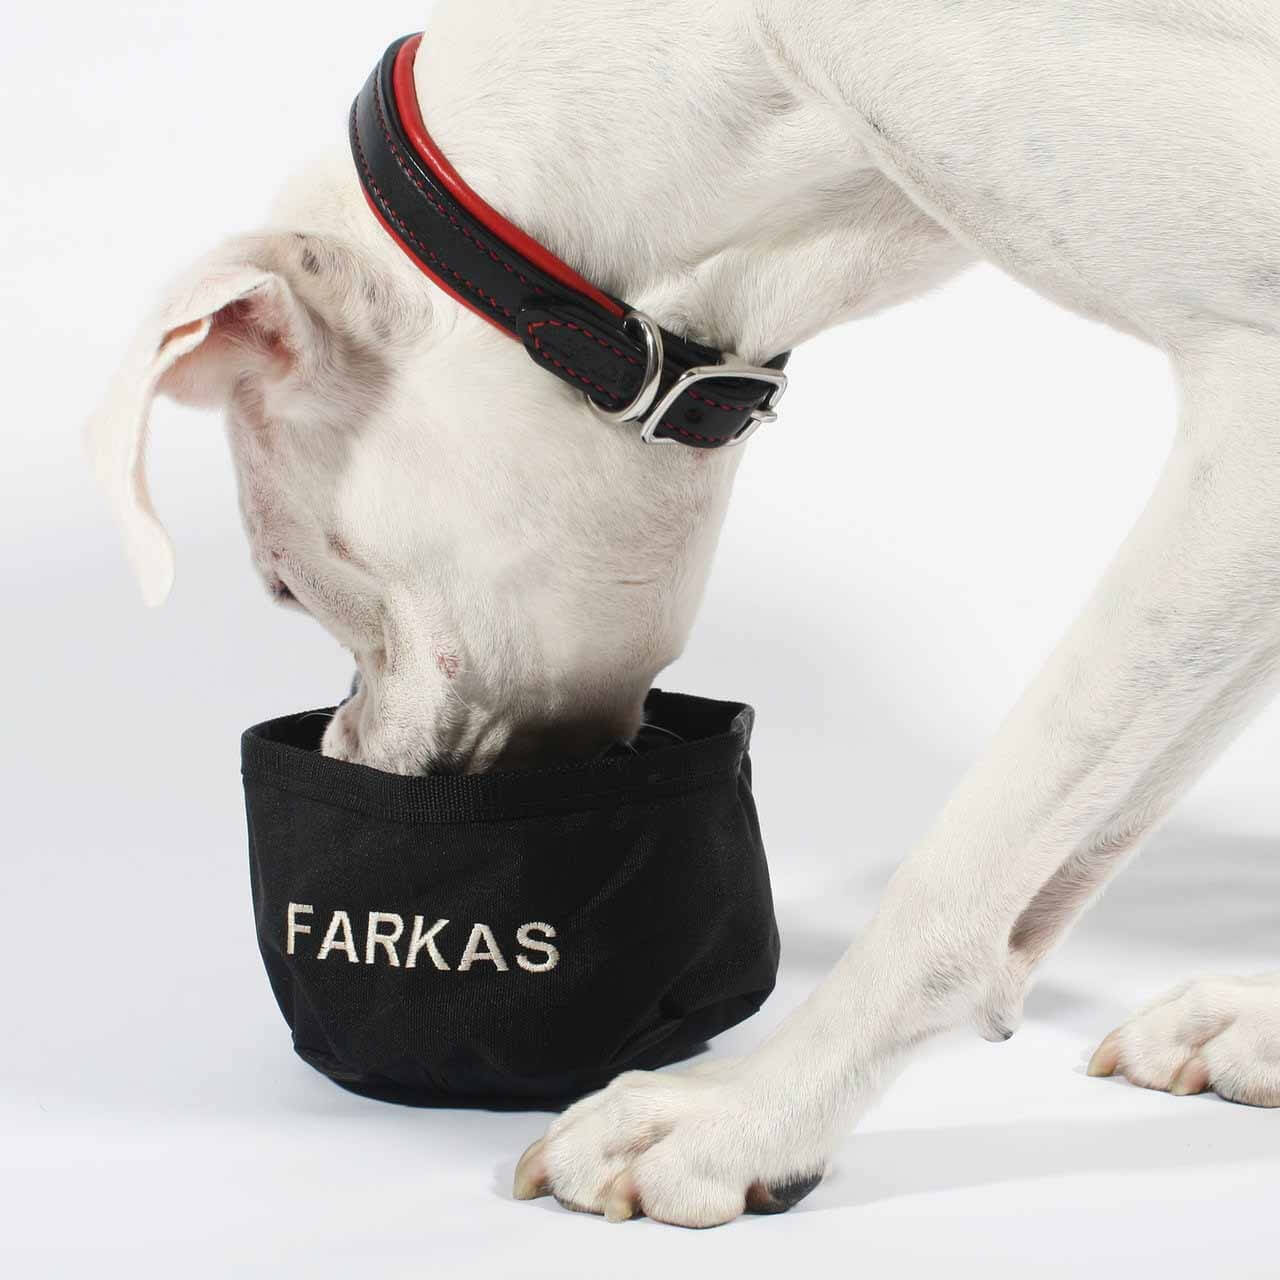 Personalized Ultra Compact-A-Bowl Dog Bowl - Dog Using It